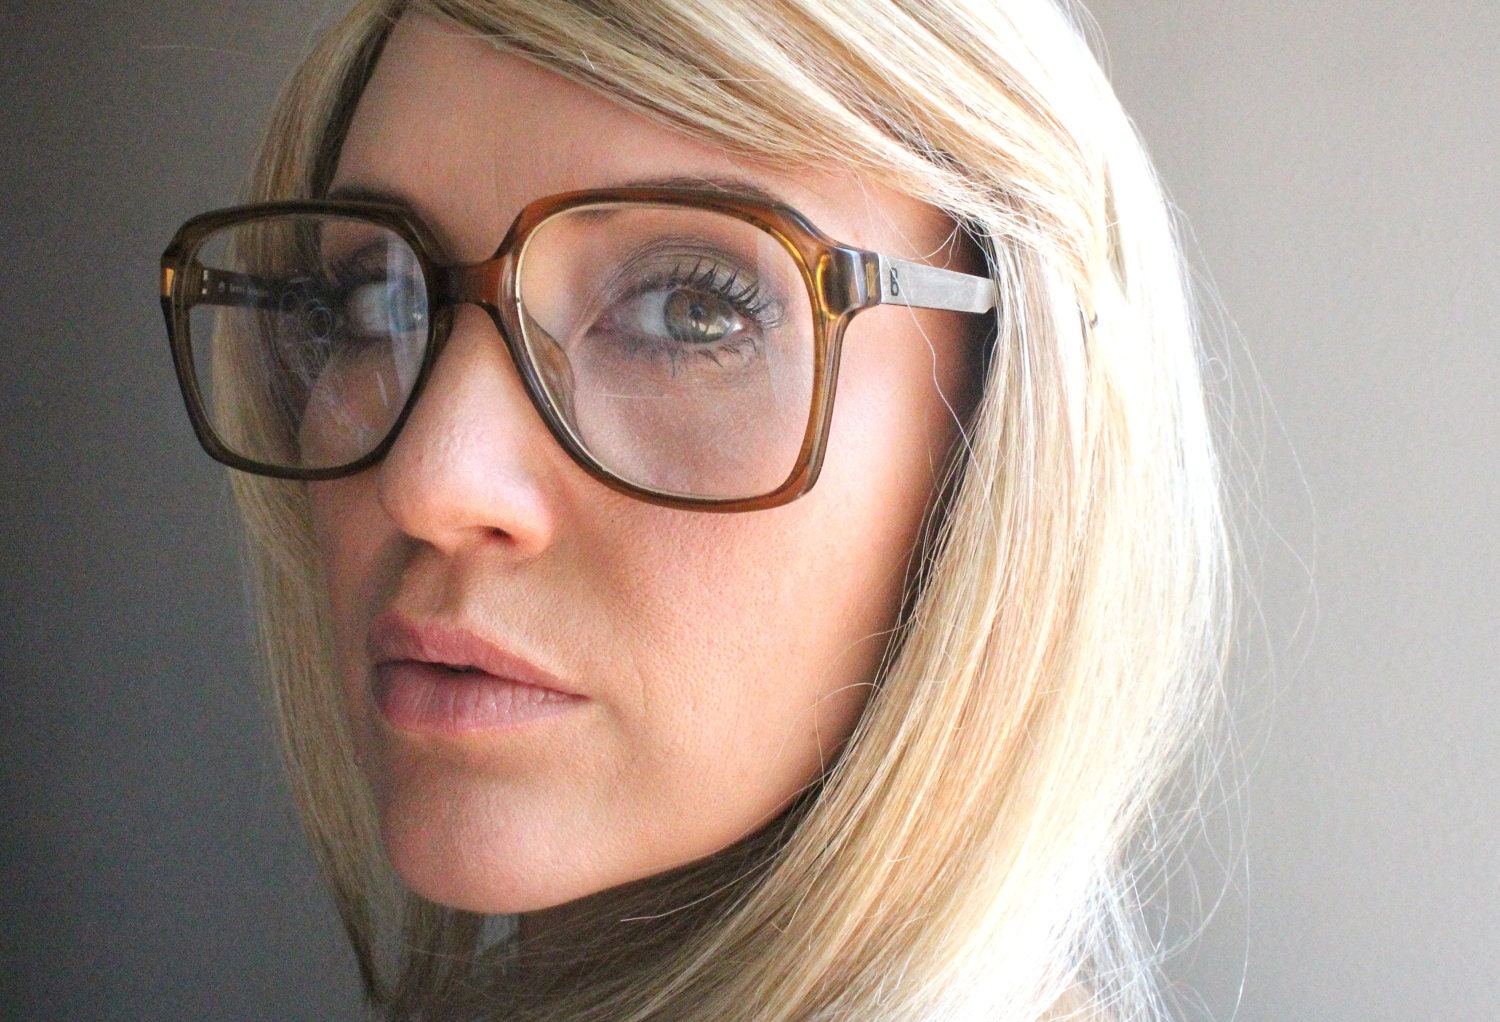 Zenni Optical Glasses Too Big : Vintage 60s Oversized Terri Brogan Eyeglass Frames